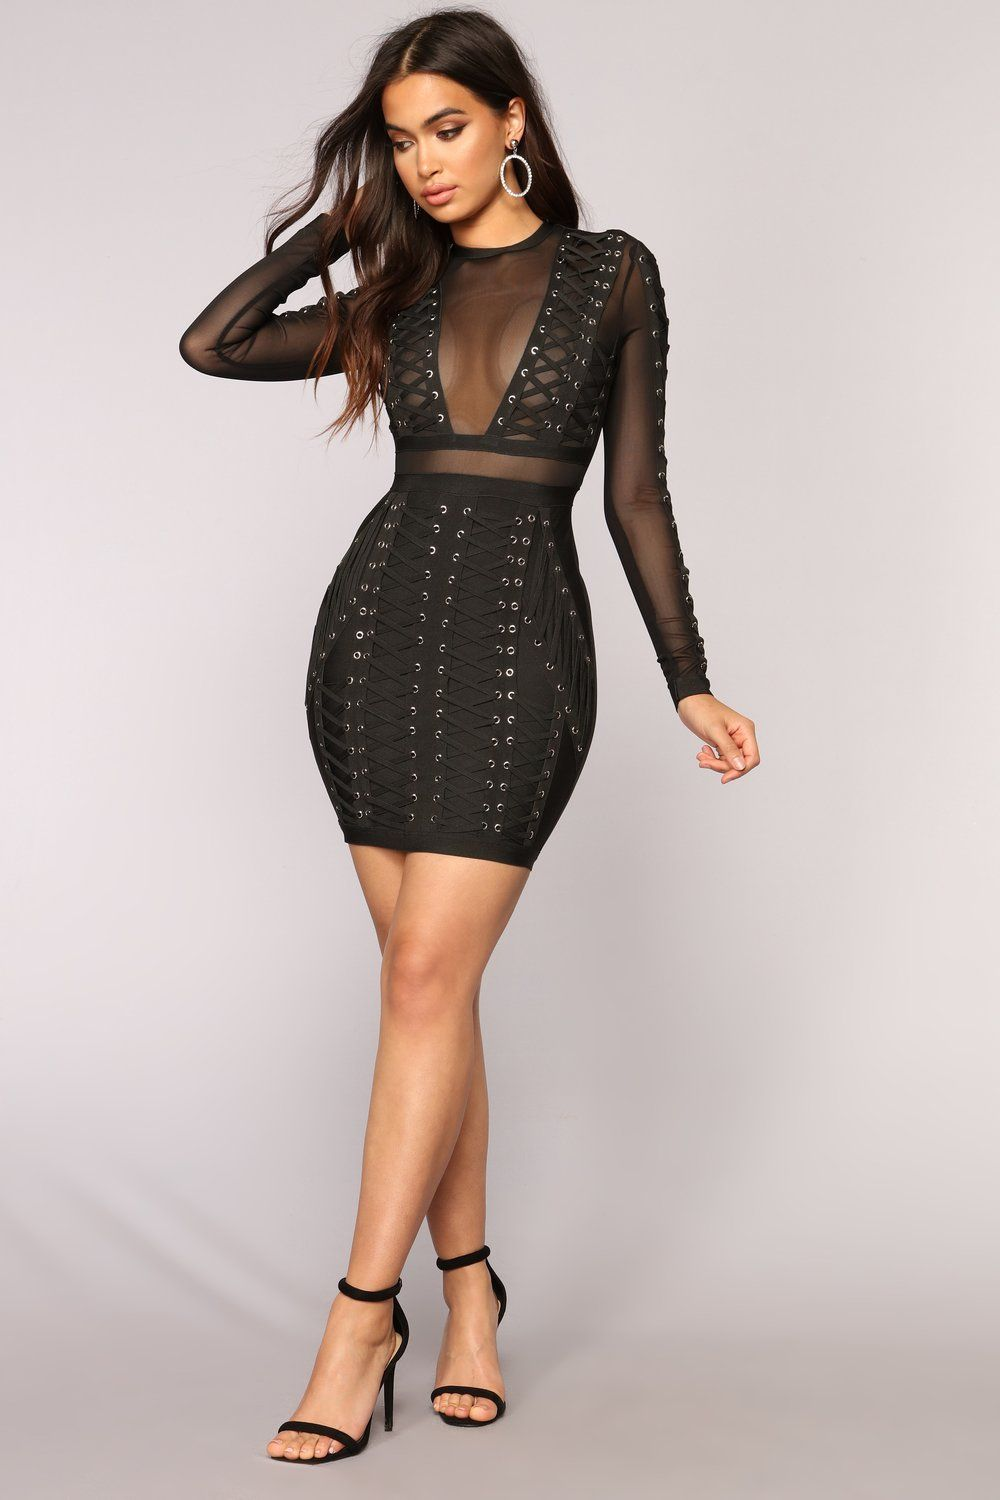 Down With The Clique Bandage Dress  Black is part of Party Clothes Black -  Available In Black Bandage Dress Mesh Cut Out Long Sleeve Lace Up Zipper Closure Self 90% Polyester 10% Spandex Contrast 100% Polyester